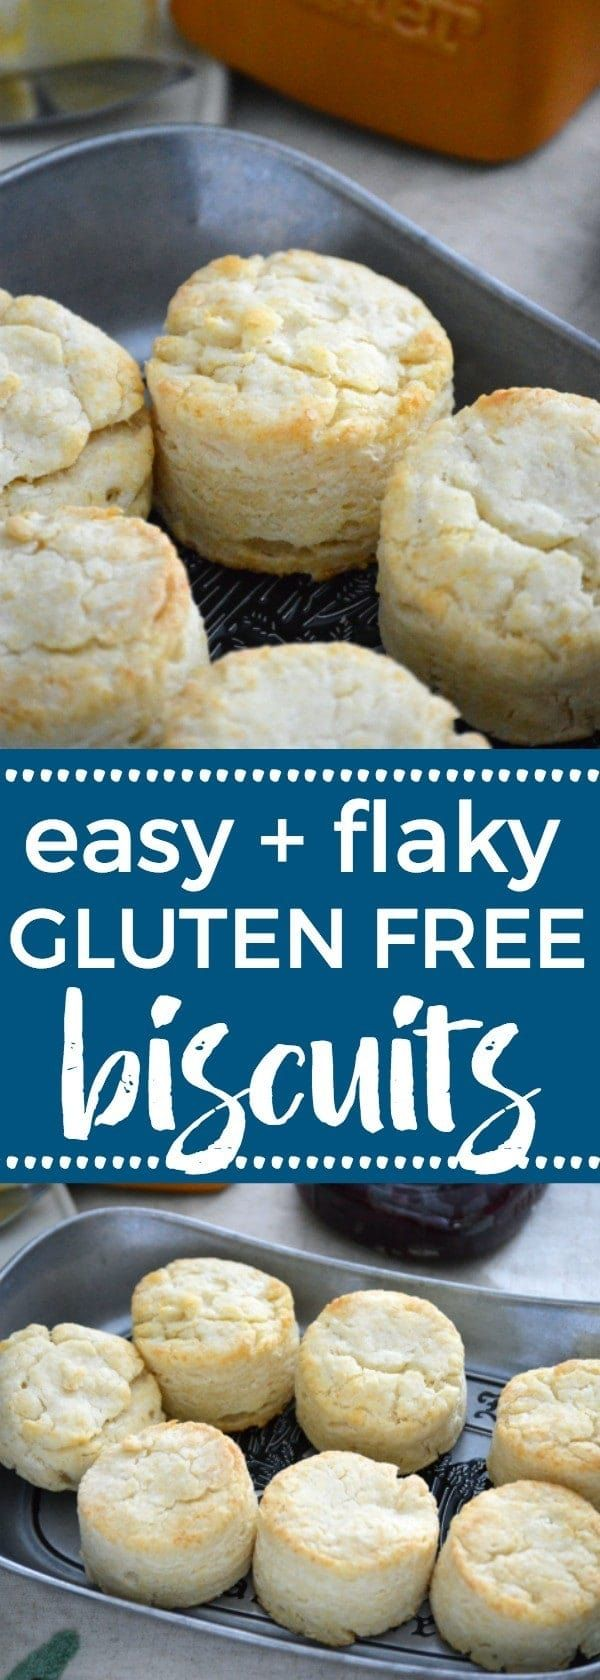 These easy and simple Gluten Free Biscuits are a adapted from my mom's biscuit recipe. These buttery, flaky, fluffy gluten free biscuits are everything you want in a biscuit! Gluten free biscuit recipe from @whattheforkblog | whattheforkfoodblog | easy bi